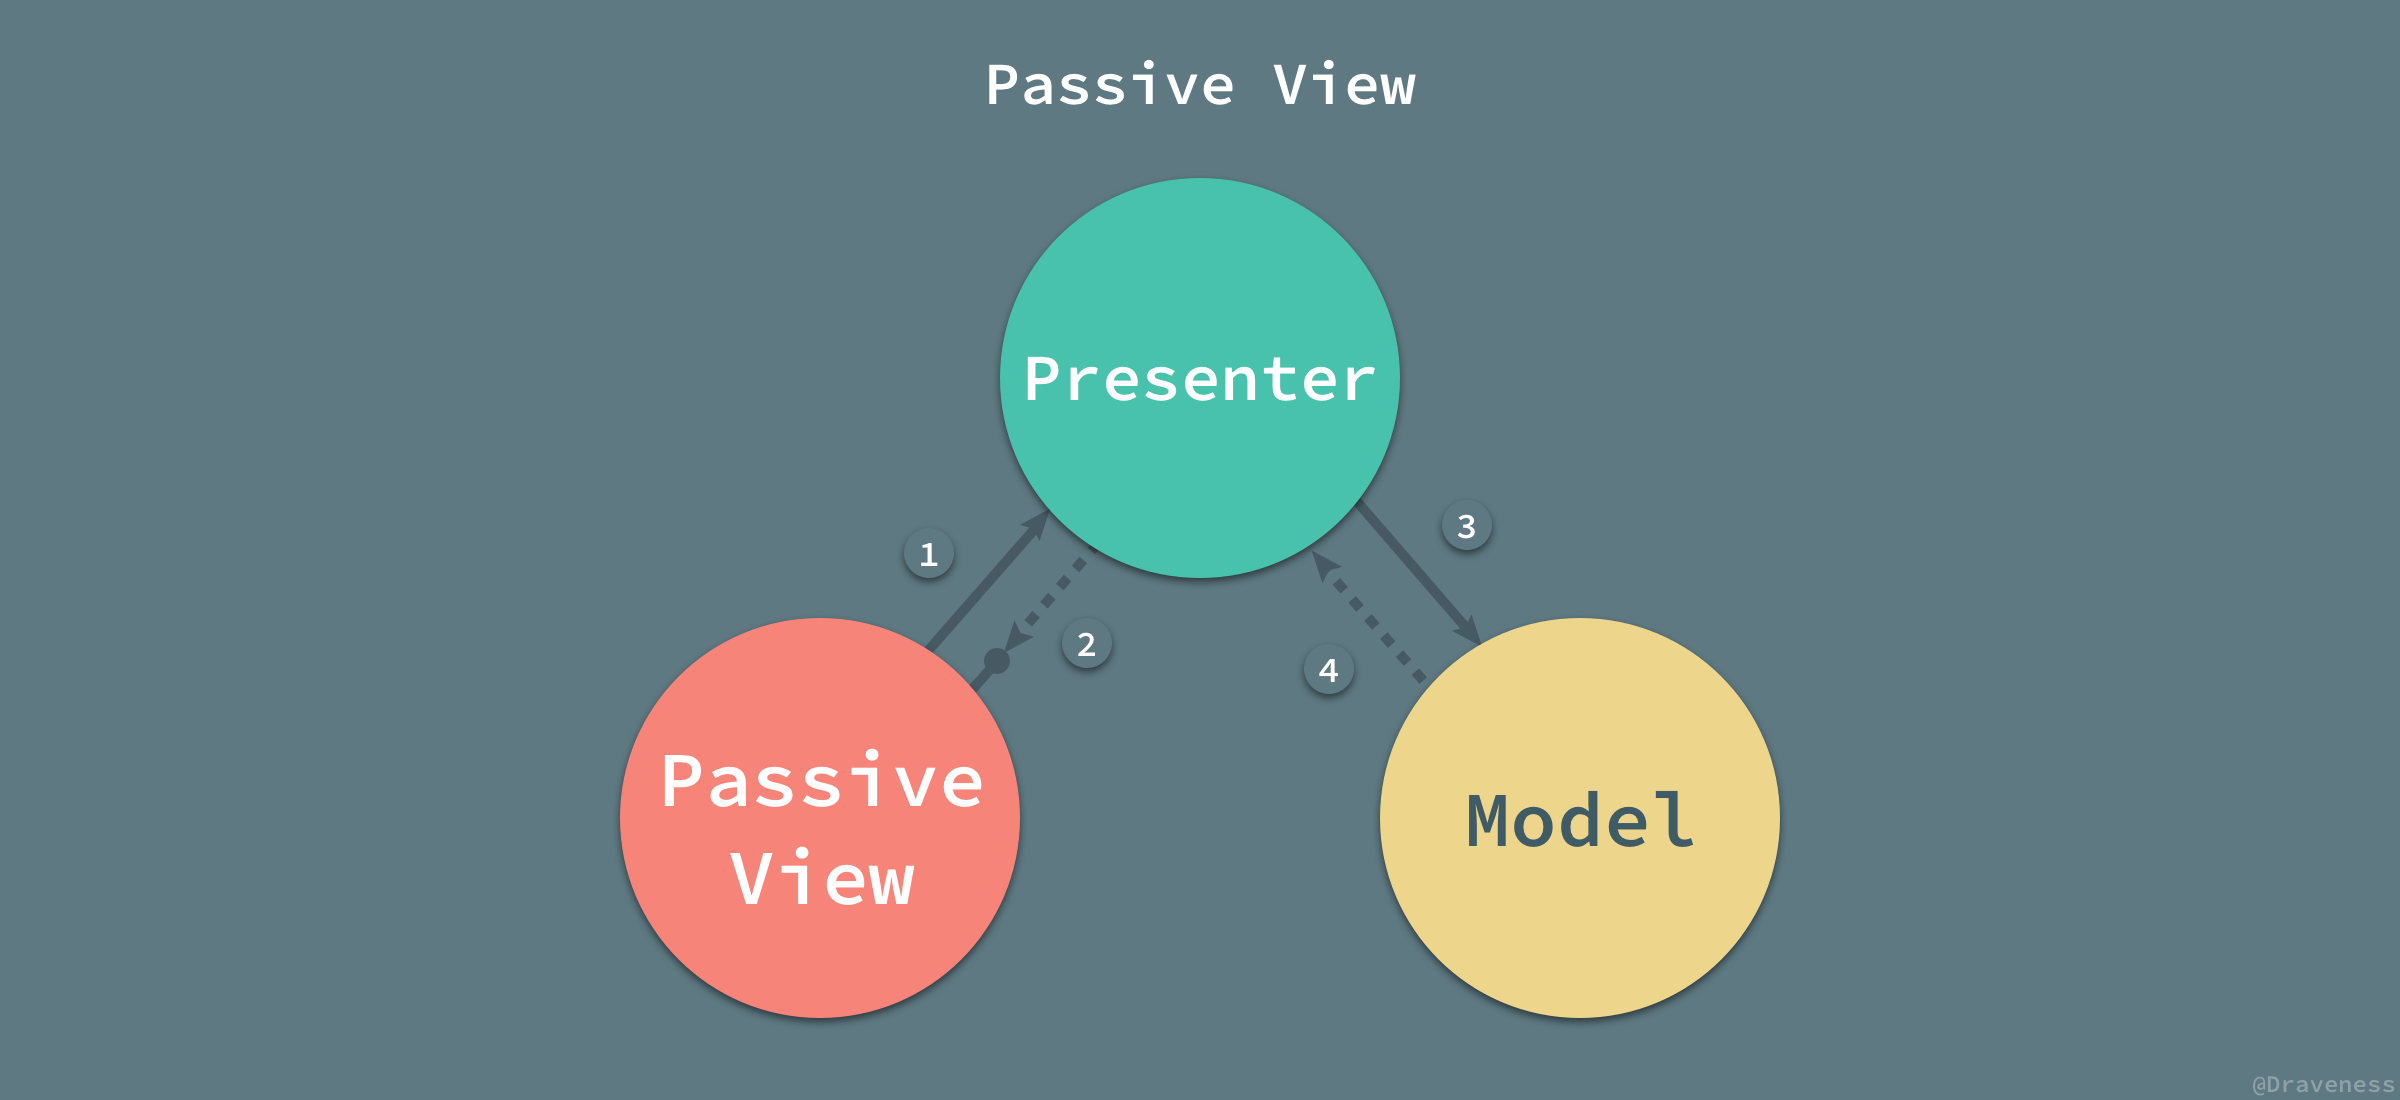 Passive-View-with-Tags.jpg